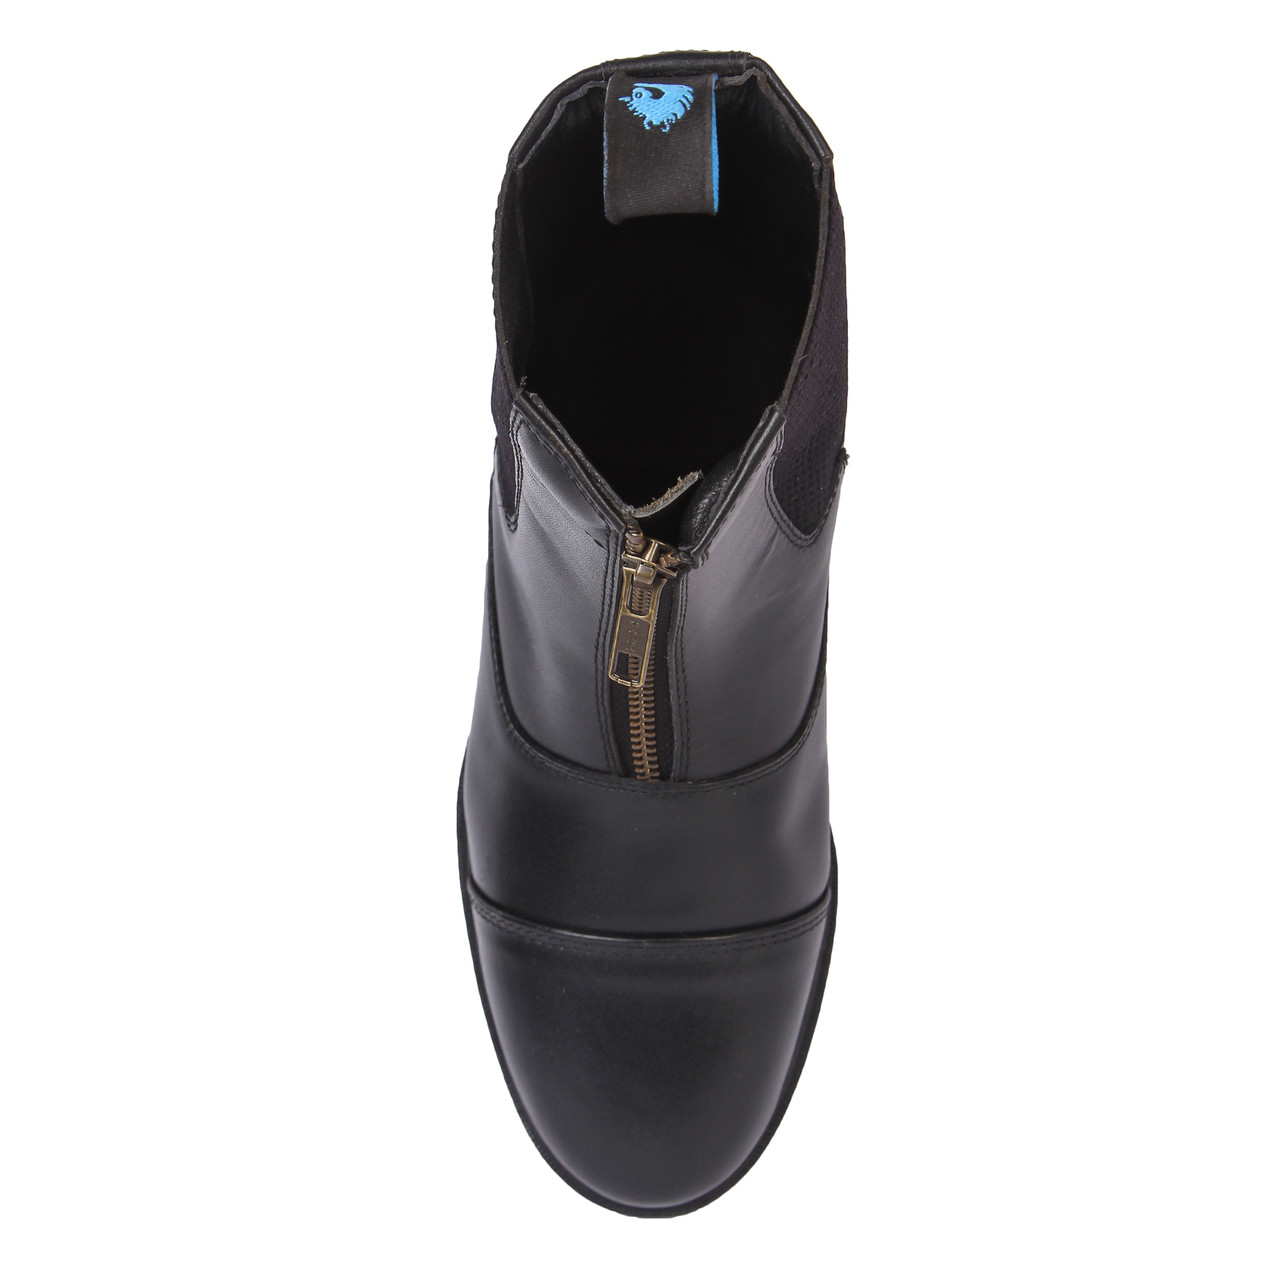 Genuine Leather Zip Front Paddock Boots Black